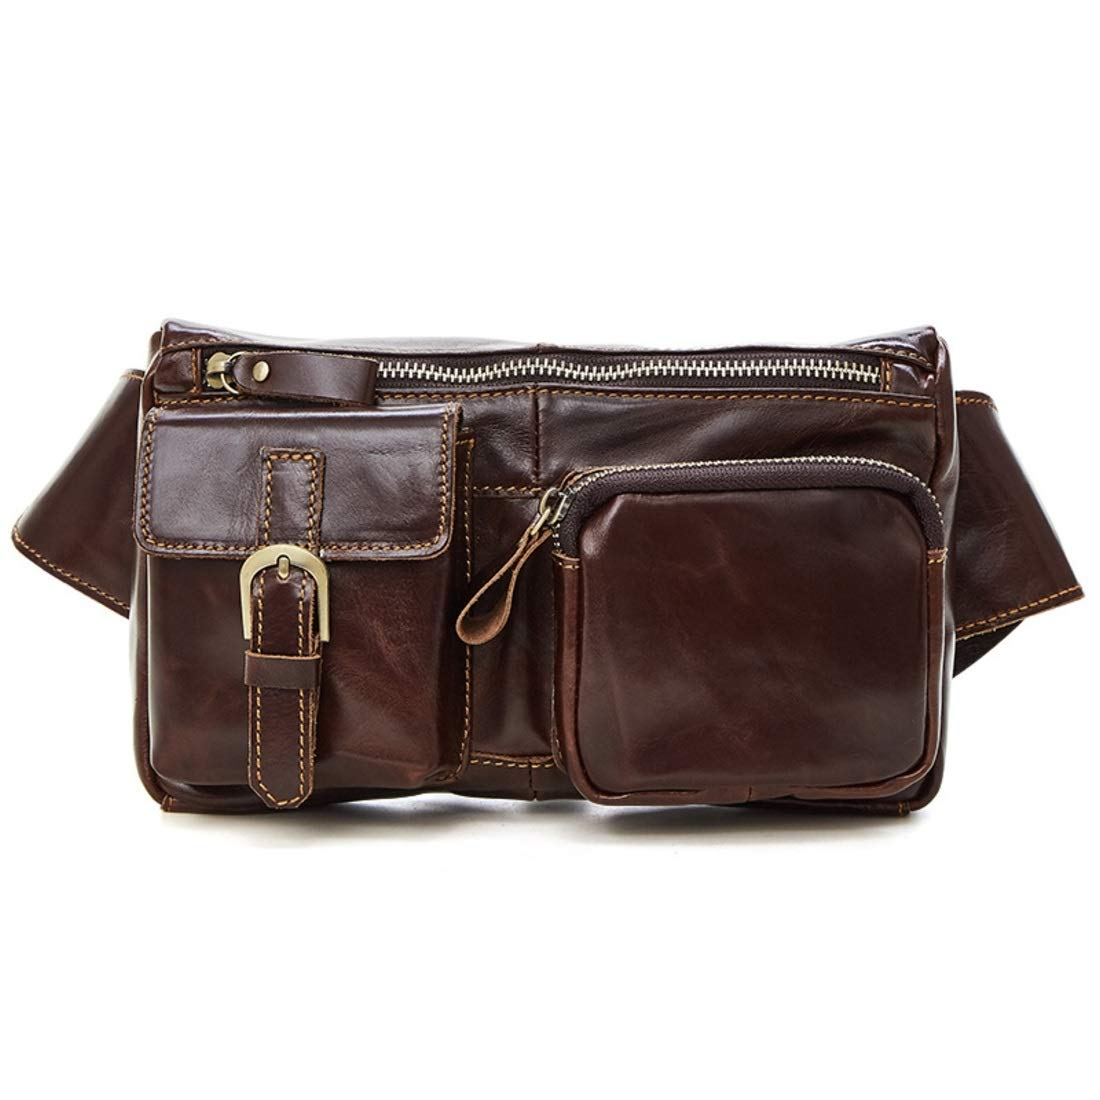 Souliyan Leather Waist Bag Bum Bag Fanny Pack Travel Waist Pack for Leisure Sports Holiday